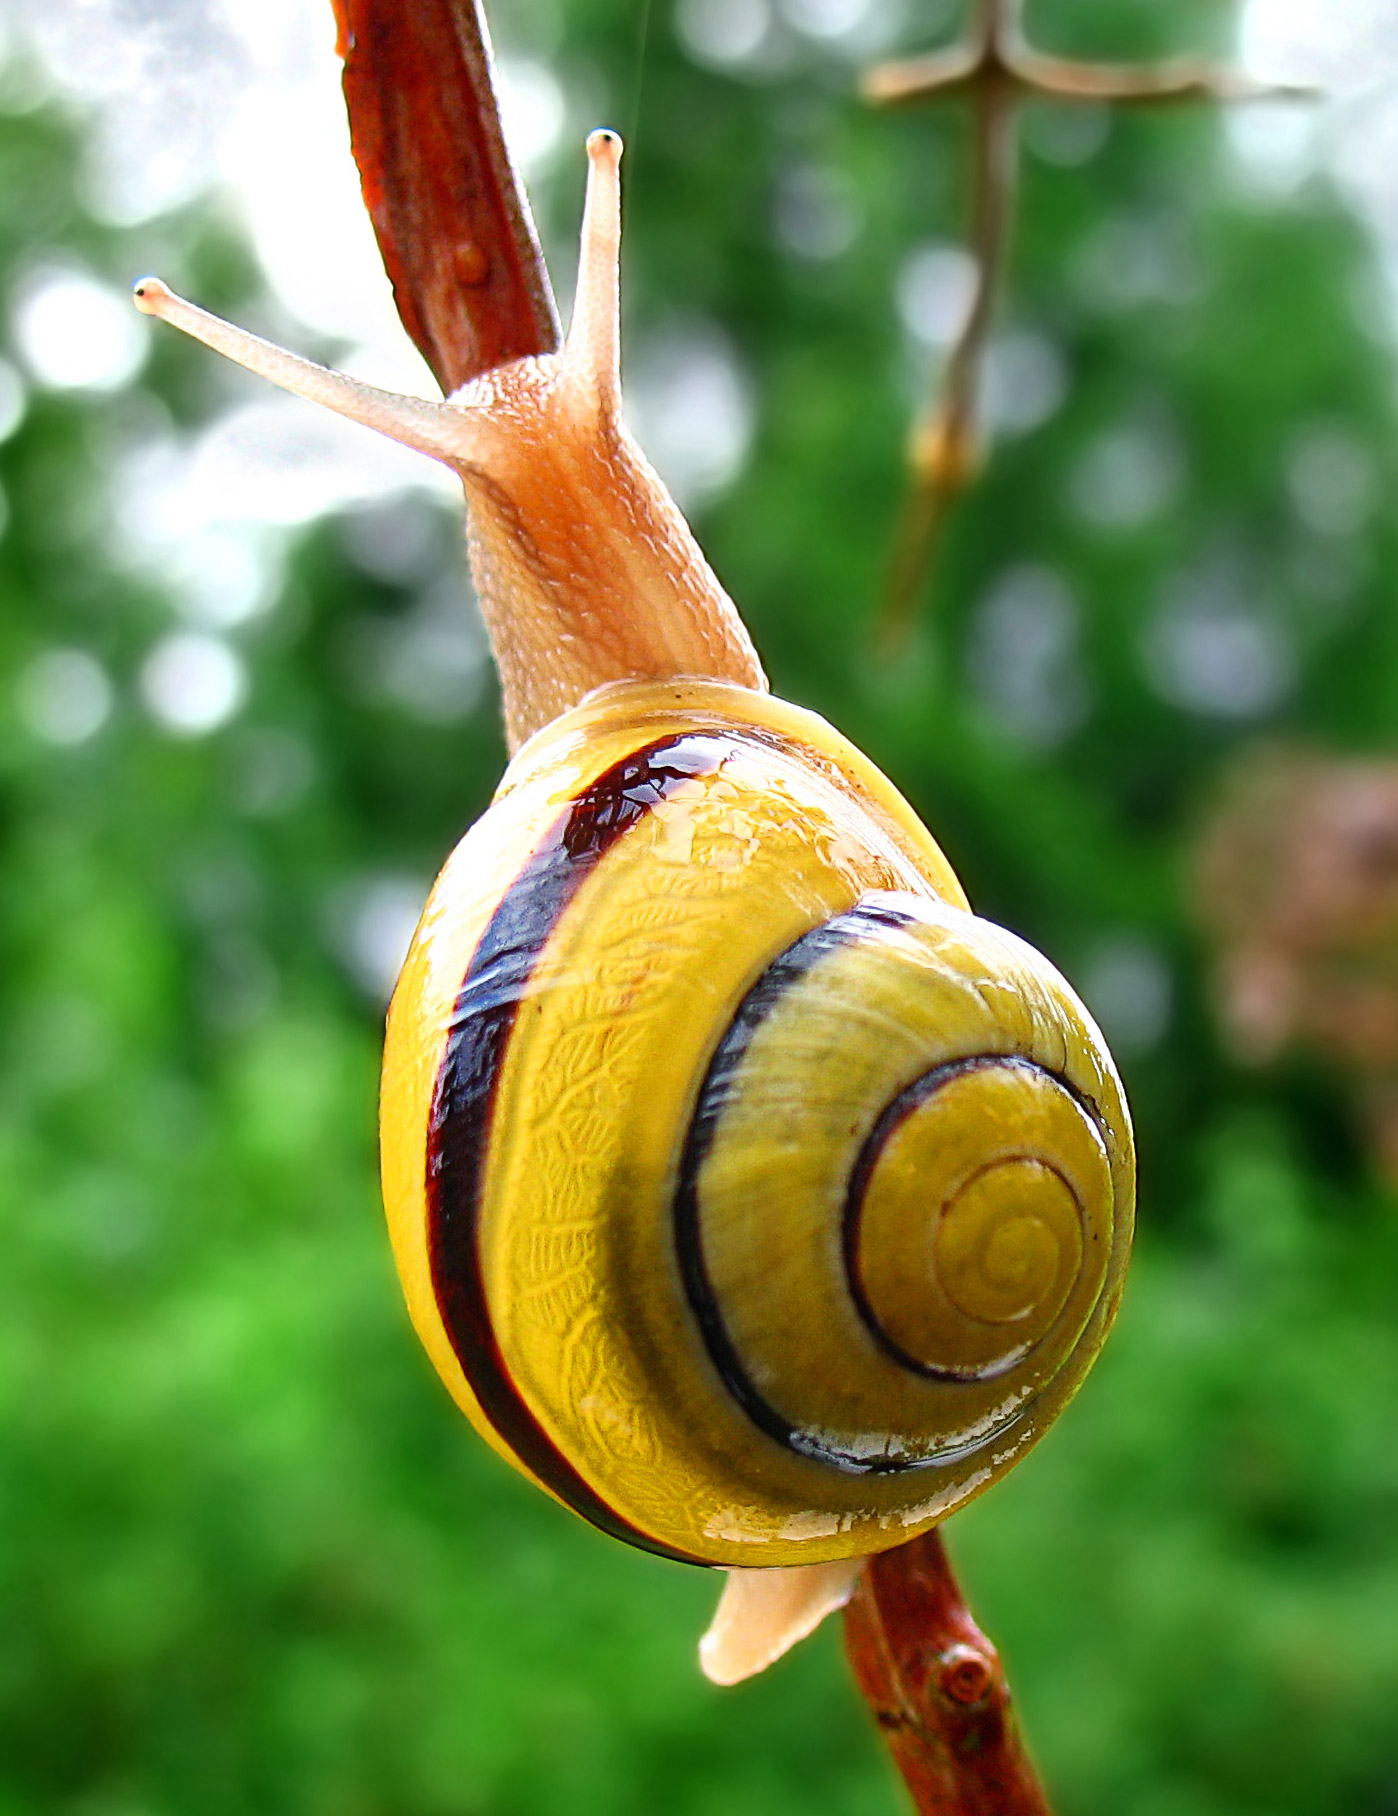 https://i1.wp.com/upload.wikimedia.org/wikipedia/commons/a/a1/Snail-WA_edit02.jpg